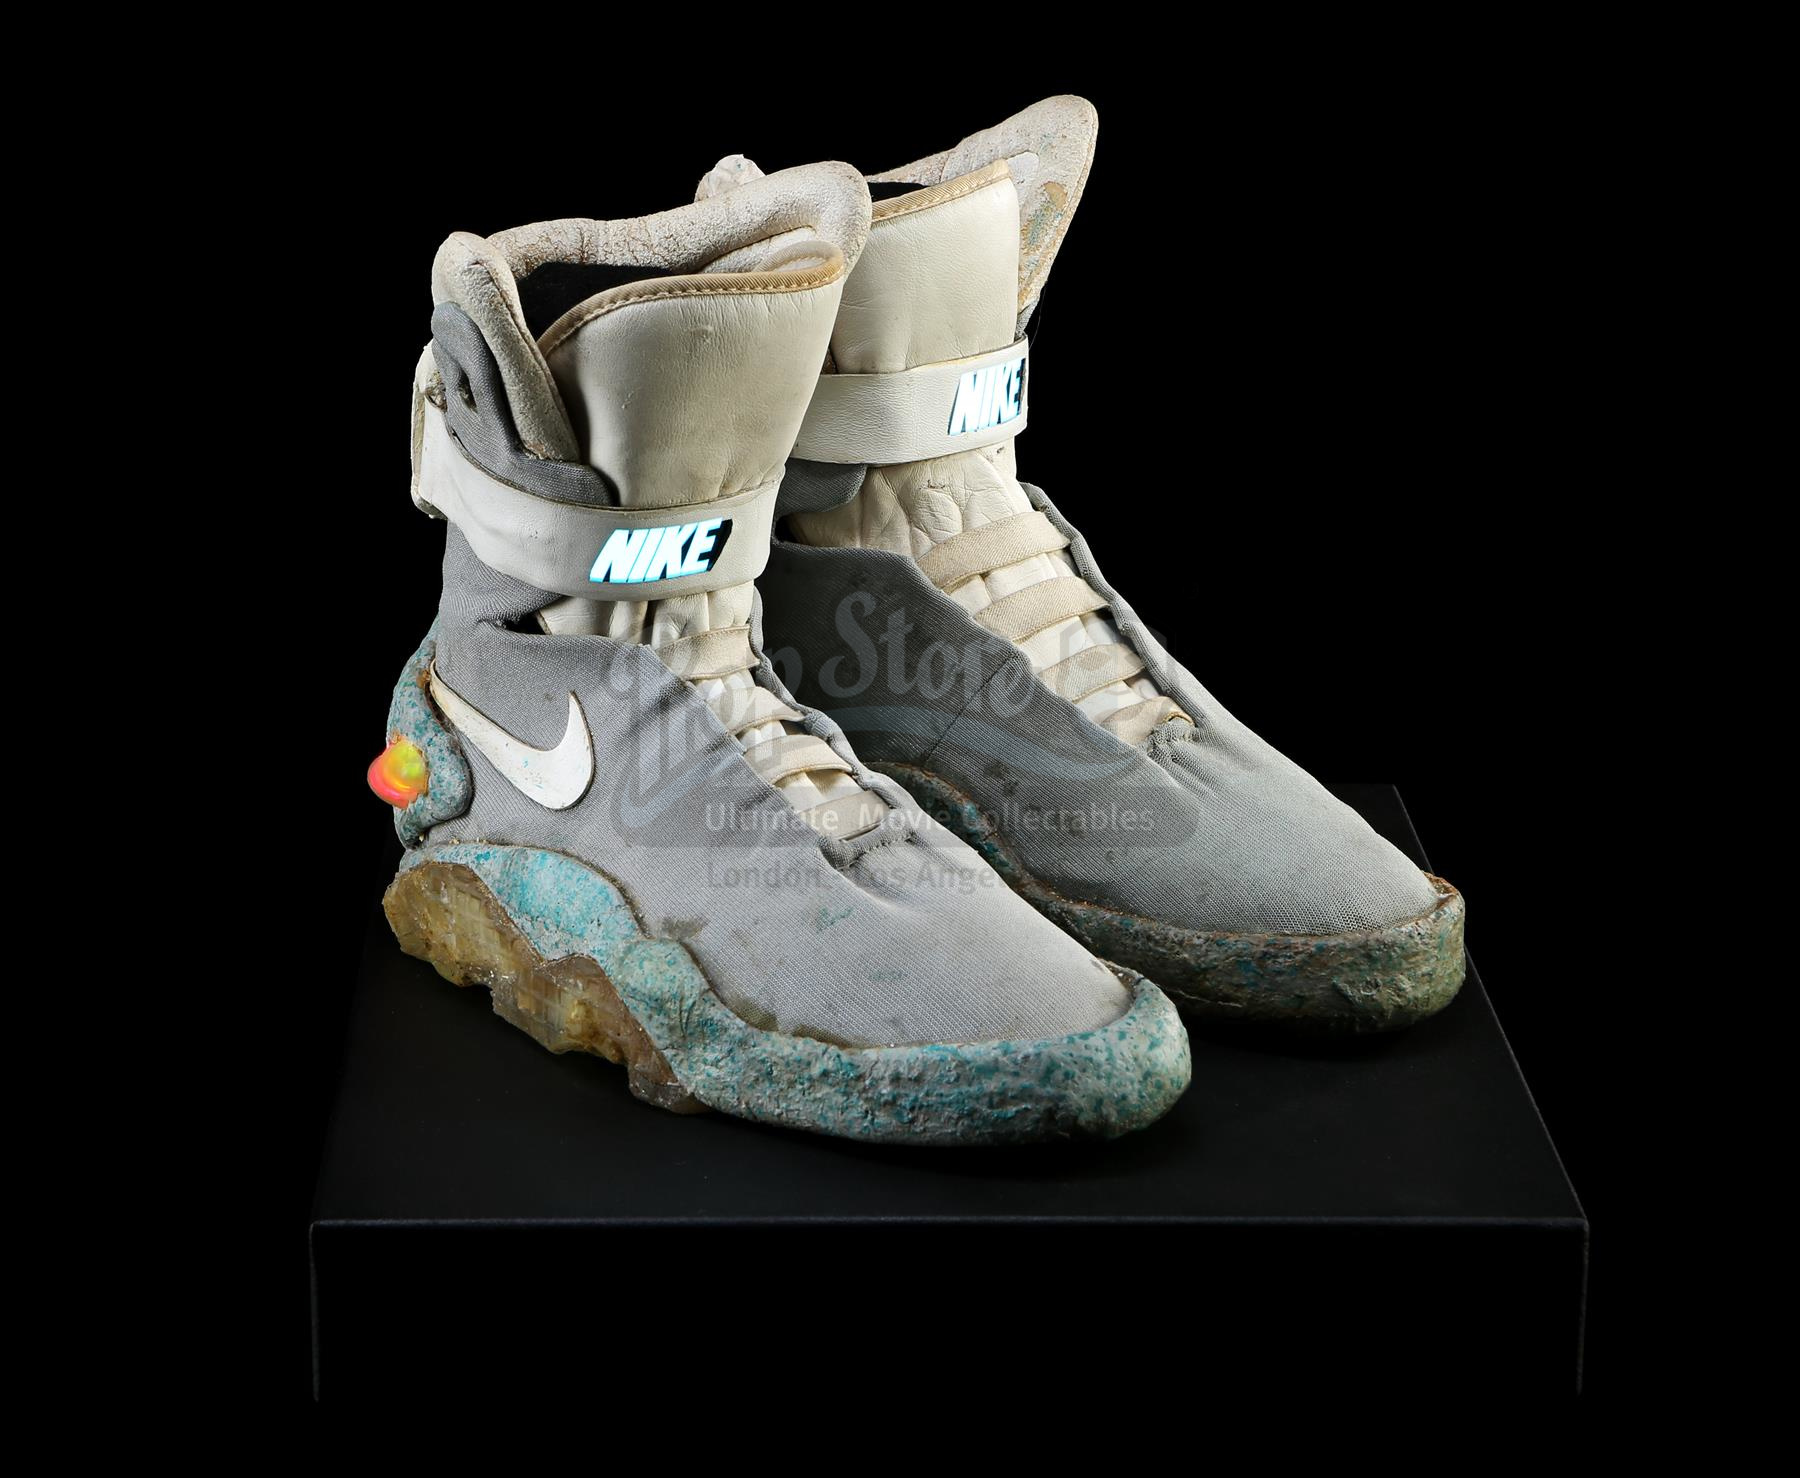 Marty McFly's (Michael J. Fox) light-up 2015 Nike shoes from Robert Zemeckis' sci-fi sequel Back to the Future Part II